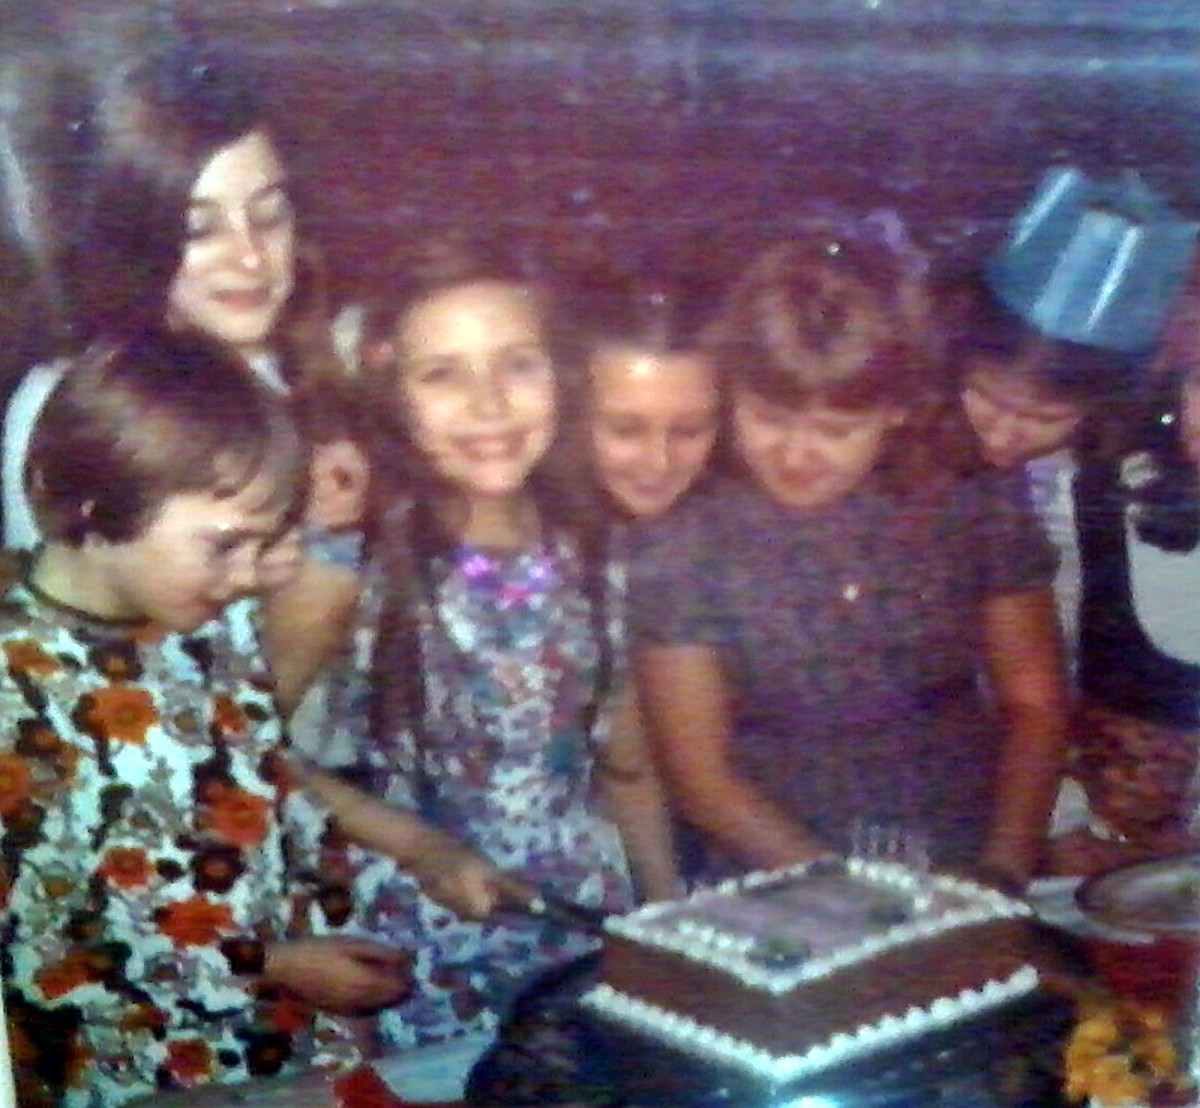 Me cutting my cake as I celebrated my 11th birthday, just before I started my first term at grammar school. I was such a shy little thing.